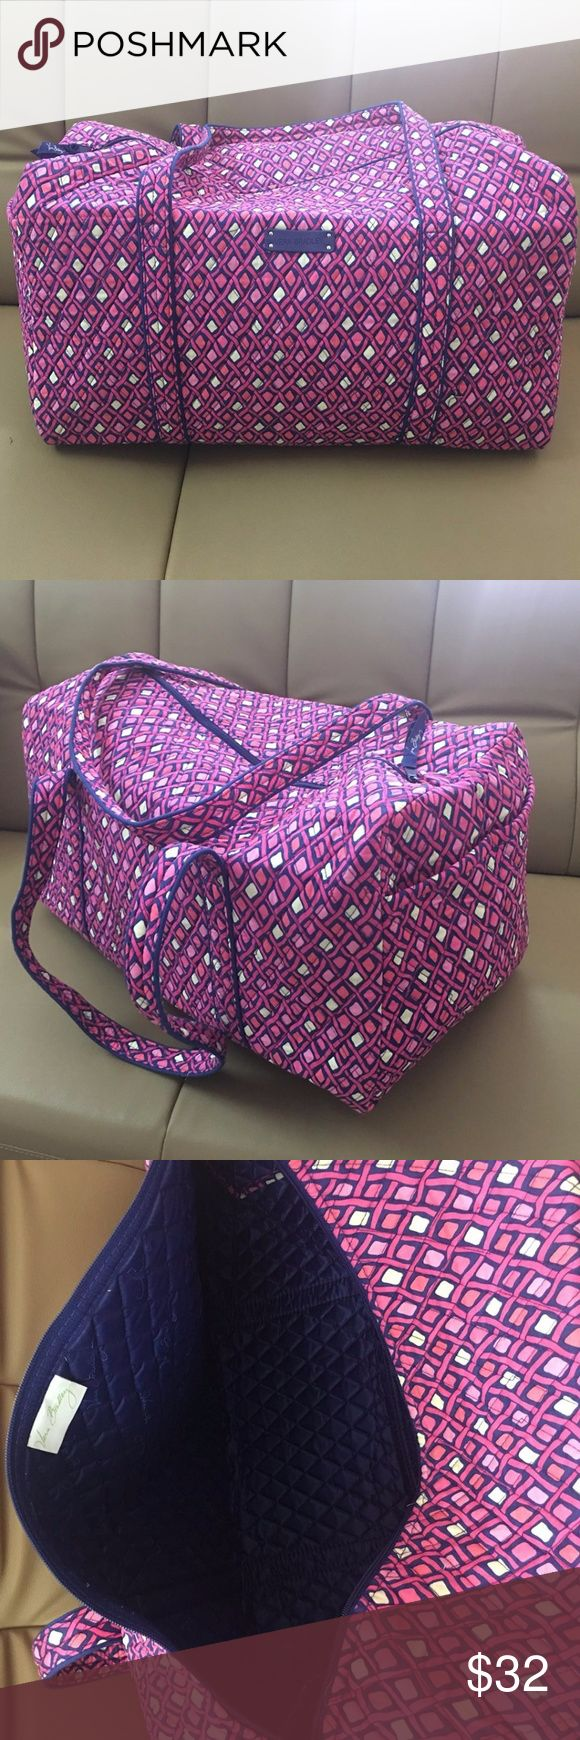 """Vera Bradley Large Duffel Katalina Pink Diamond **Price is firm**  New never used without tag Vera Bradley Large Duffel tote is made of quilted fabric.  The fully zippered top closure secures a fully open interior allowing for flexibility in packing.  There's an open slip pocket on the end for easy access storage.  The dual straps have a comfortable drop of about 16"""", and are sewn from the bottom, all the way up each side.  It measures 22"""" long x 11.5"""" high x 11.5"""" wide. Vera Bradley Bags…"""